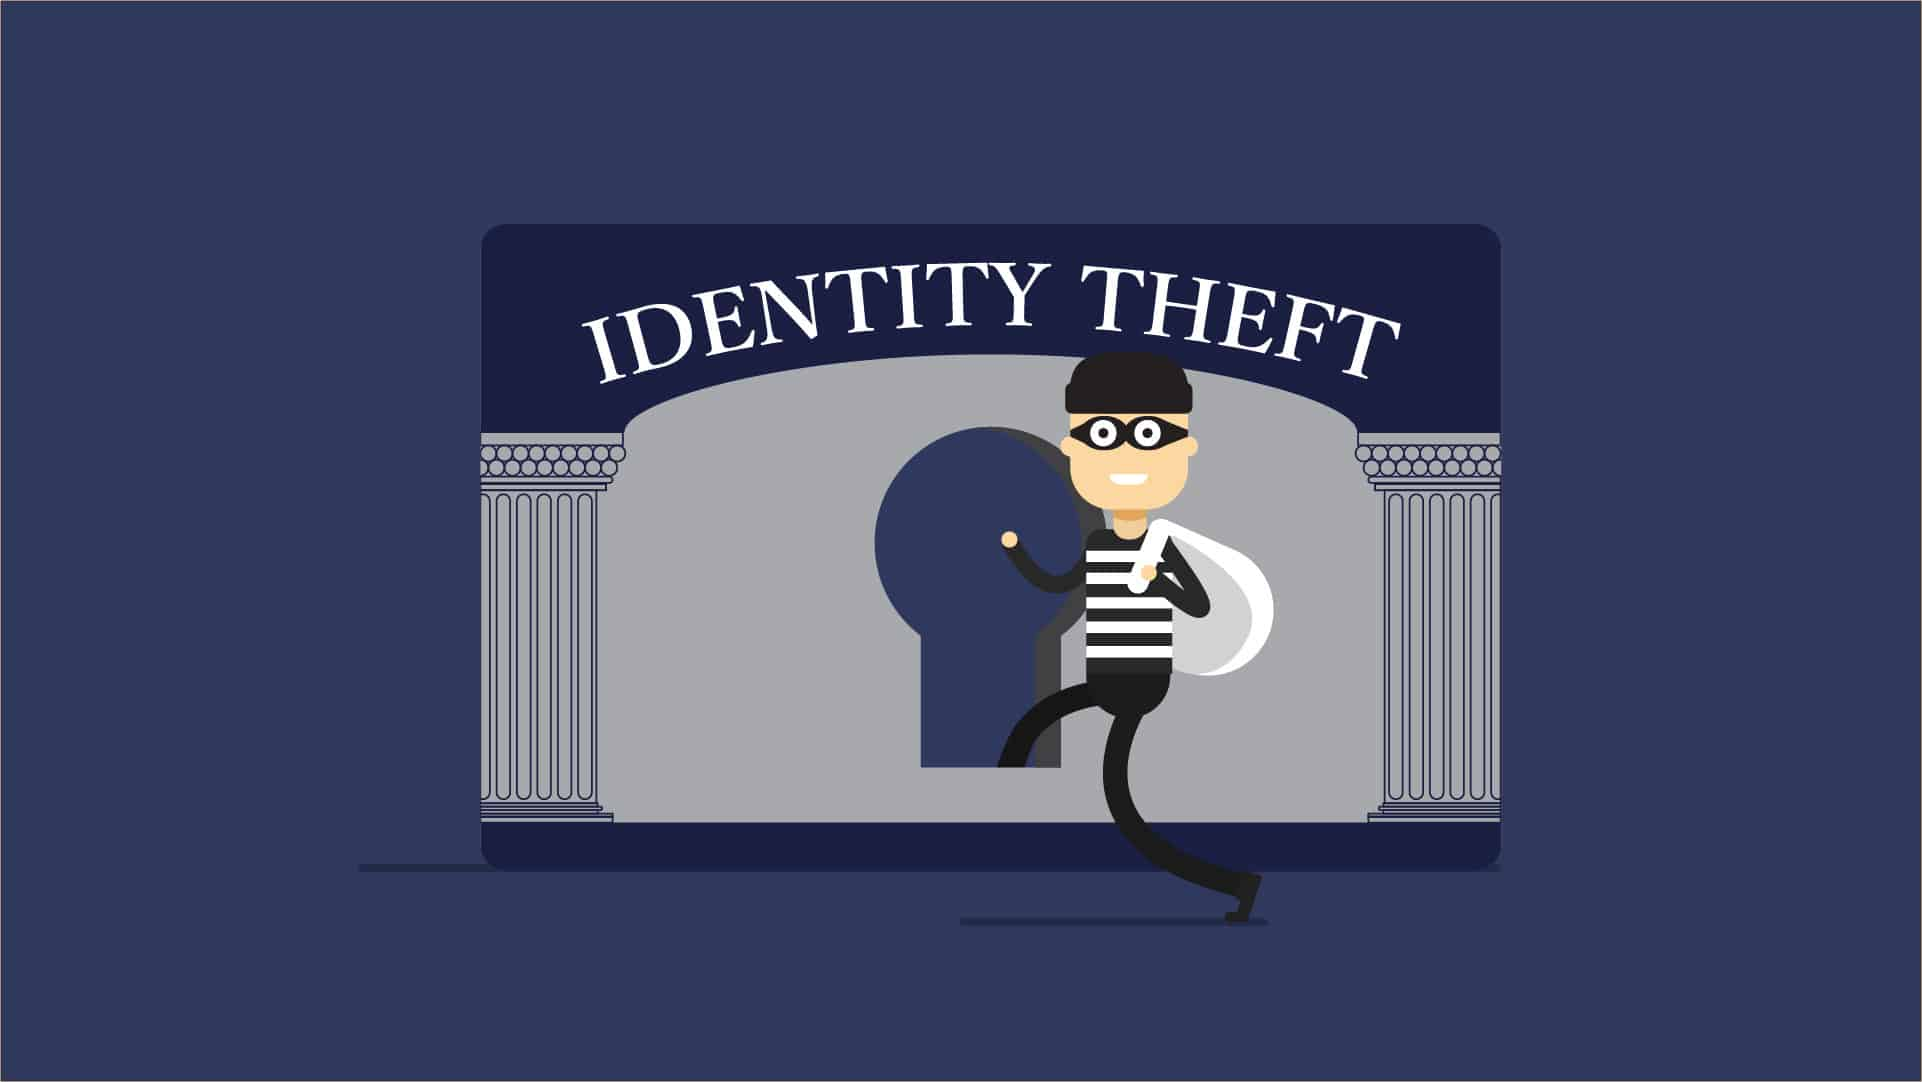 RKN Global's Ronald Noble on Identity Theft and Identity Fraud: You Must be Vigiliant